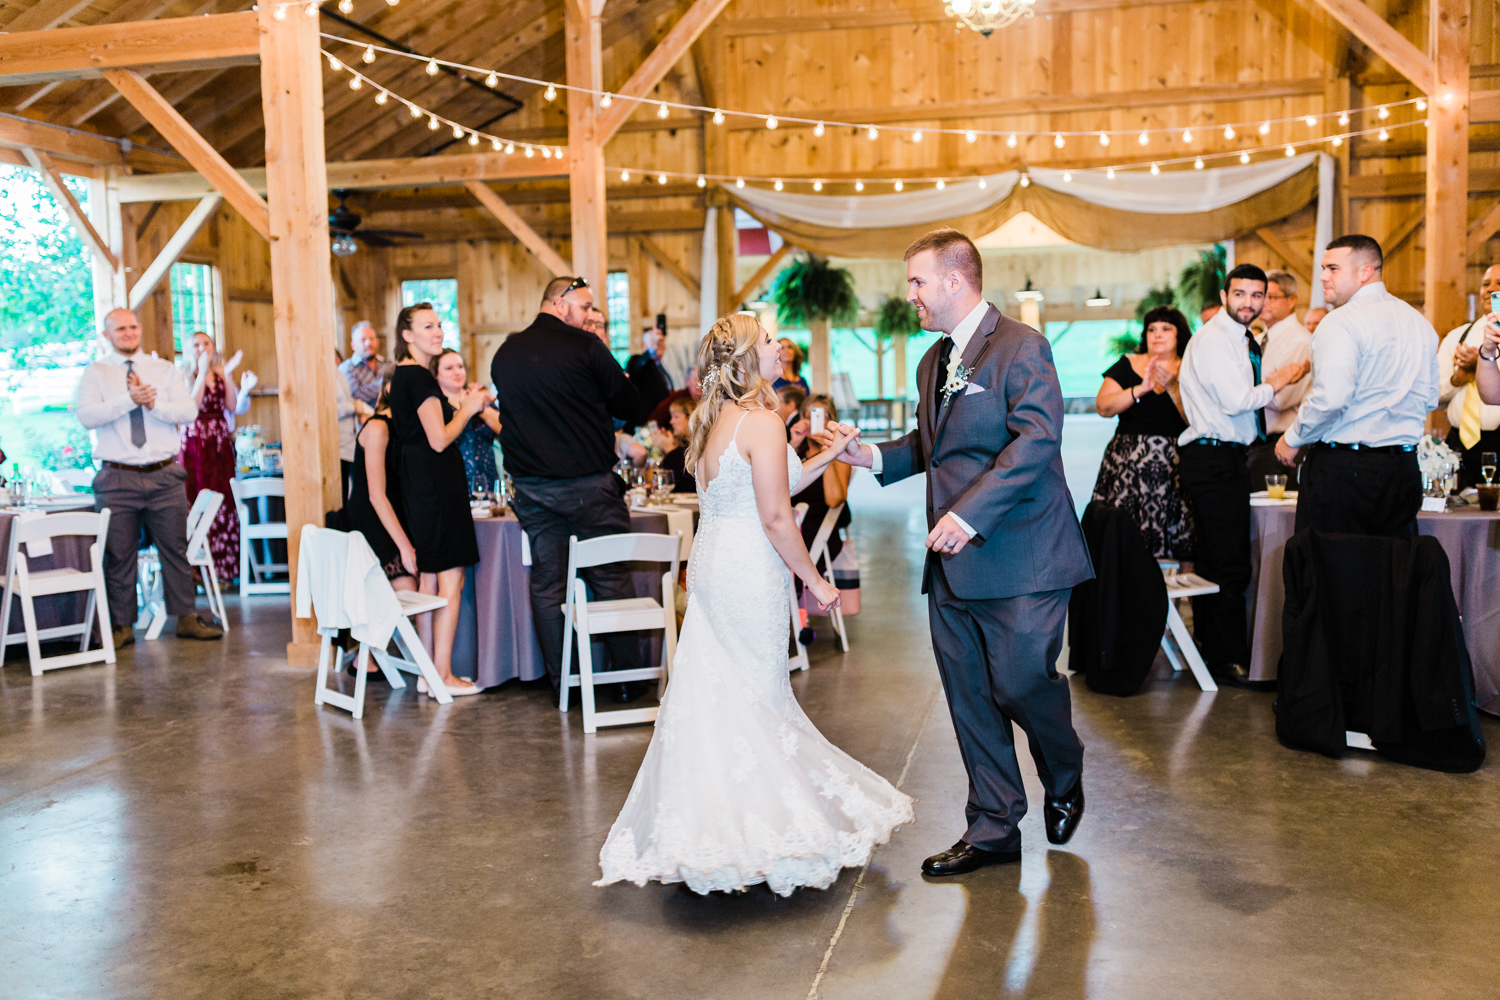 Bride and Groom introduced in to their reception - Pond View Farm Wedding